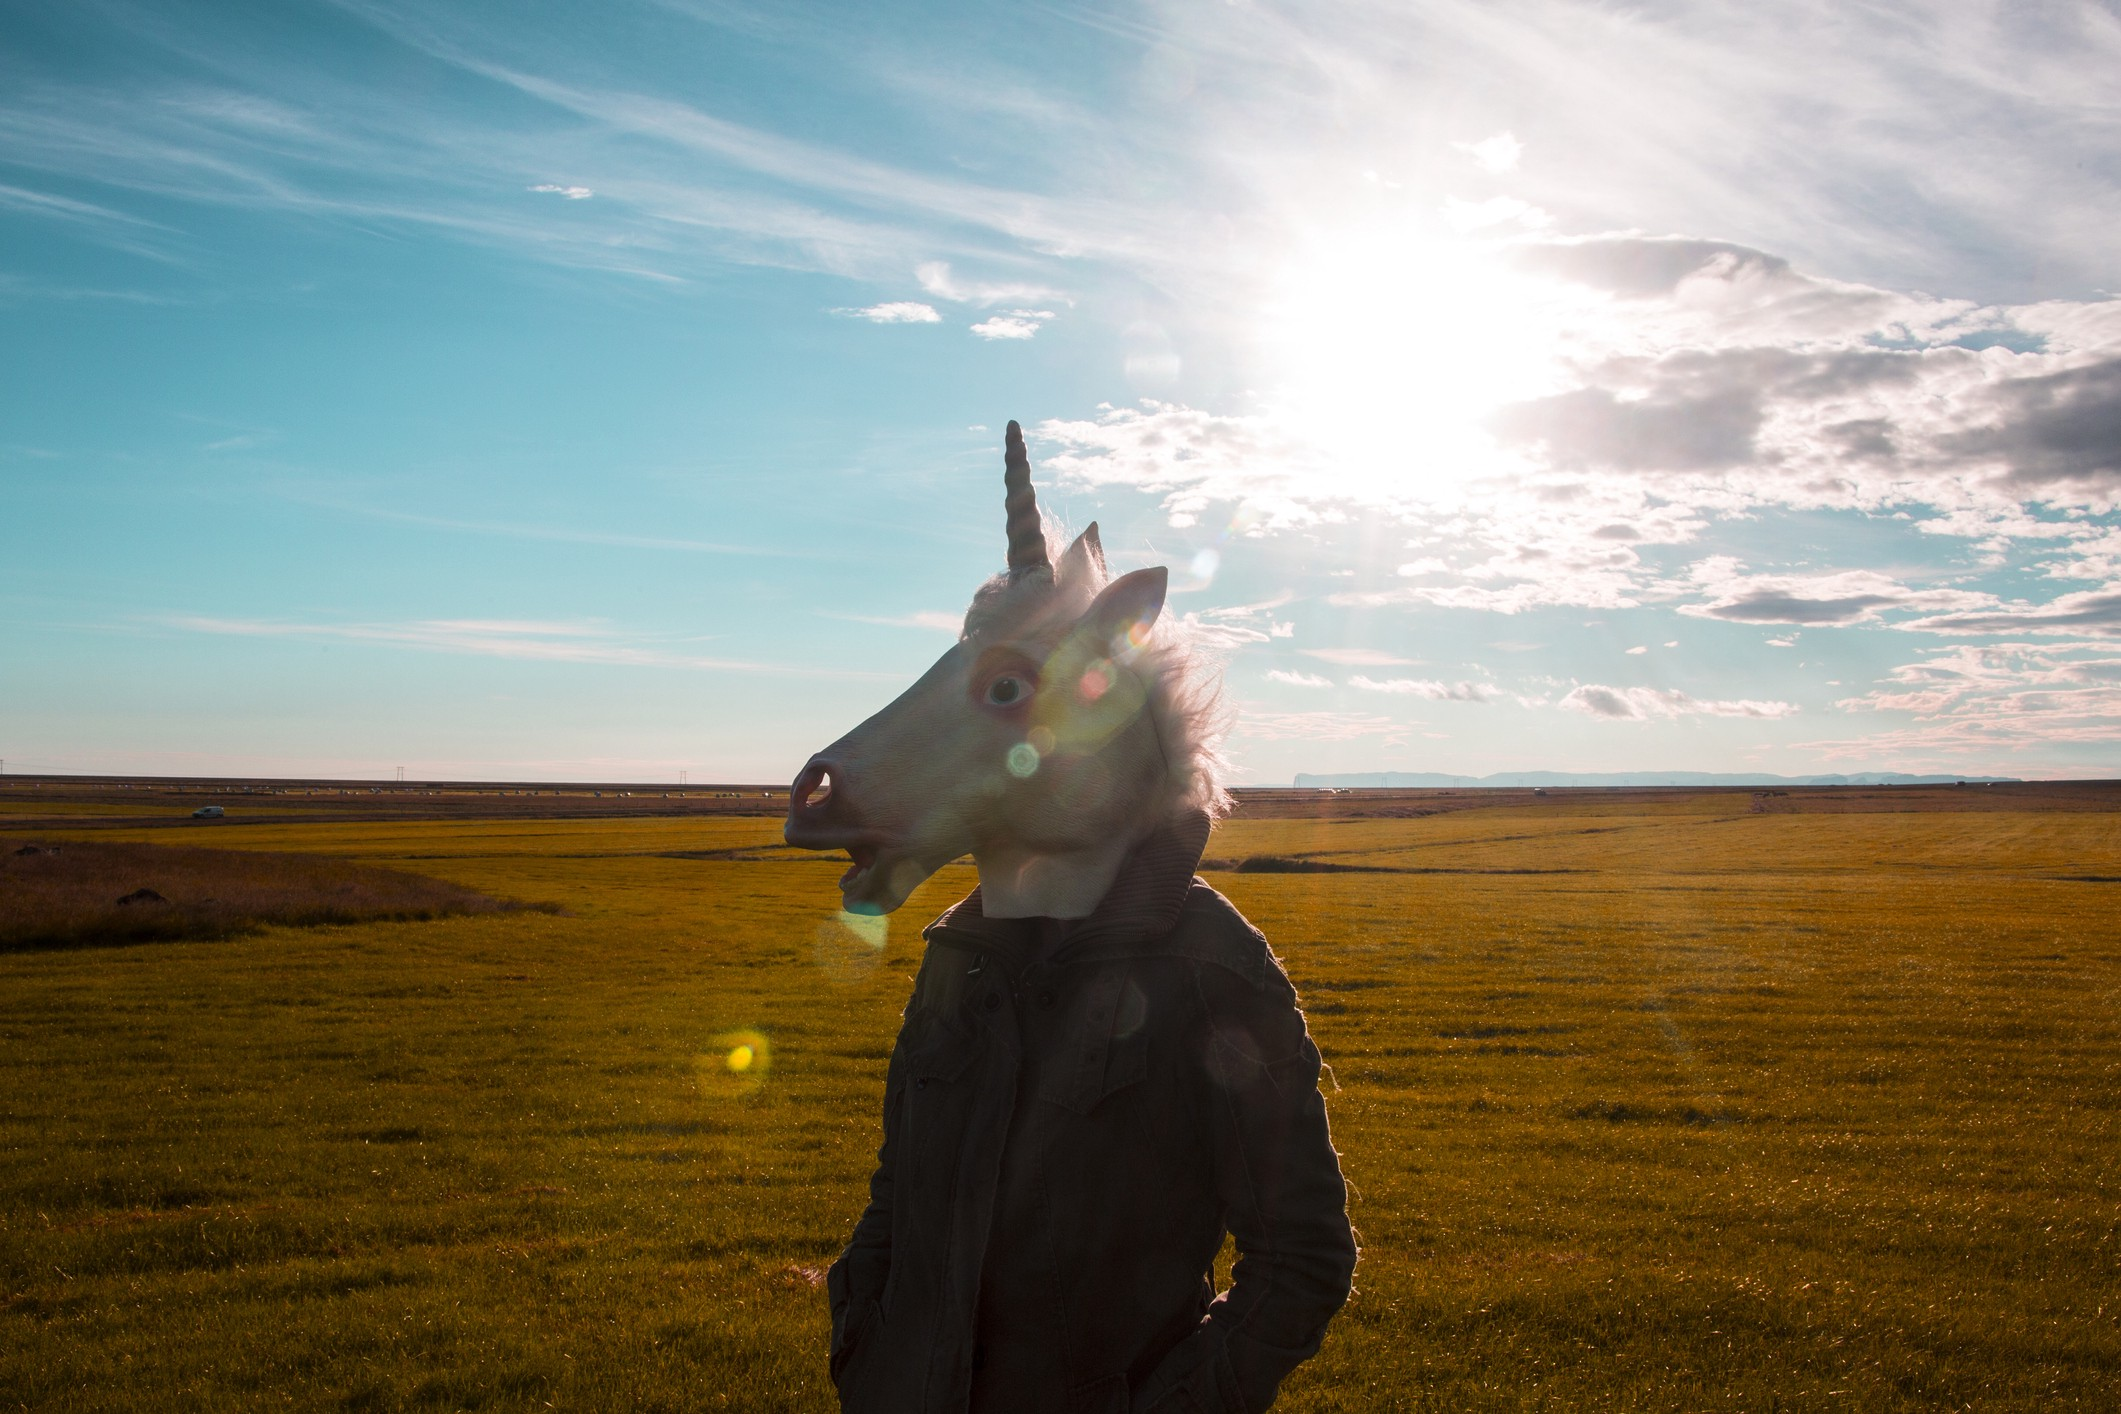 A man wearing a unicorn mask standing in a sunny field.